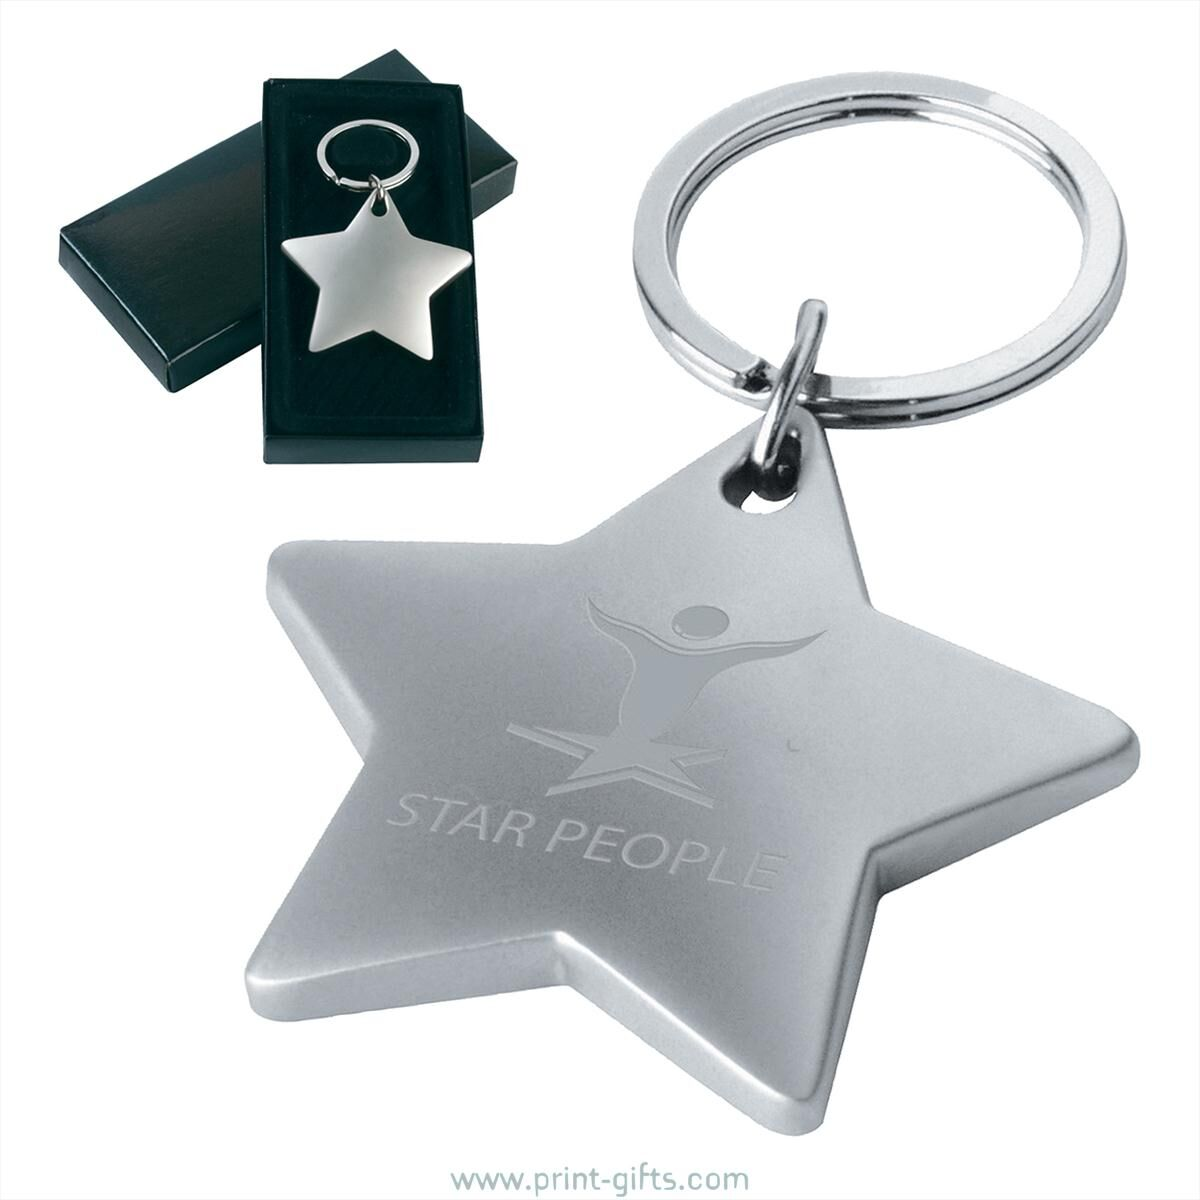 Starlight Metal Keyrings for Engraving - plain metal